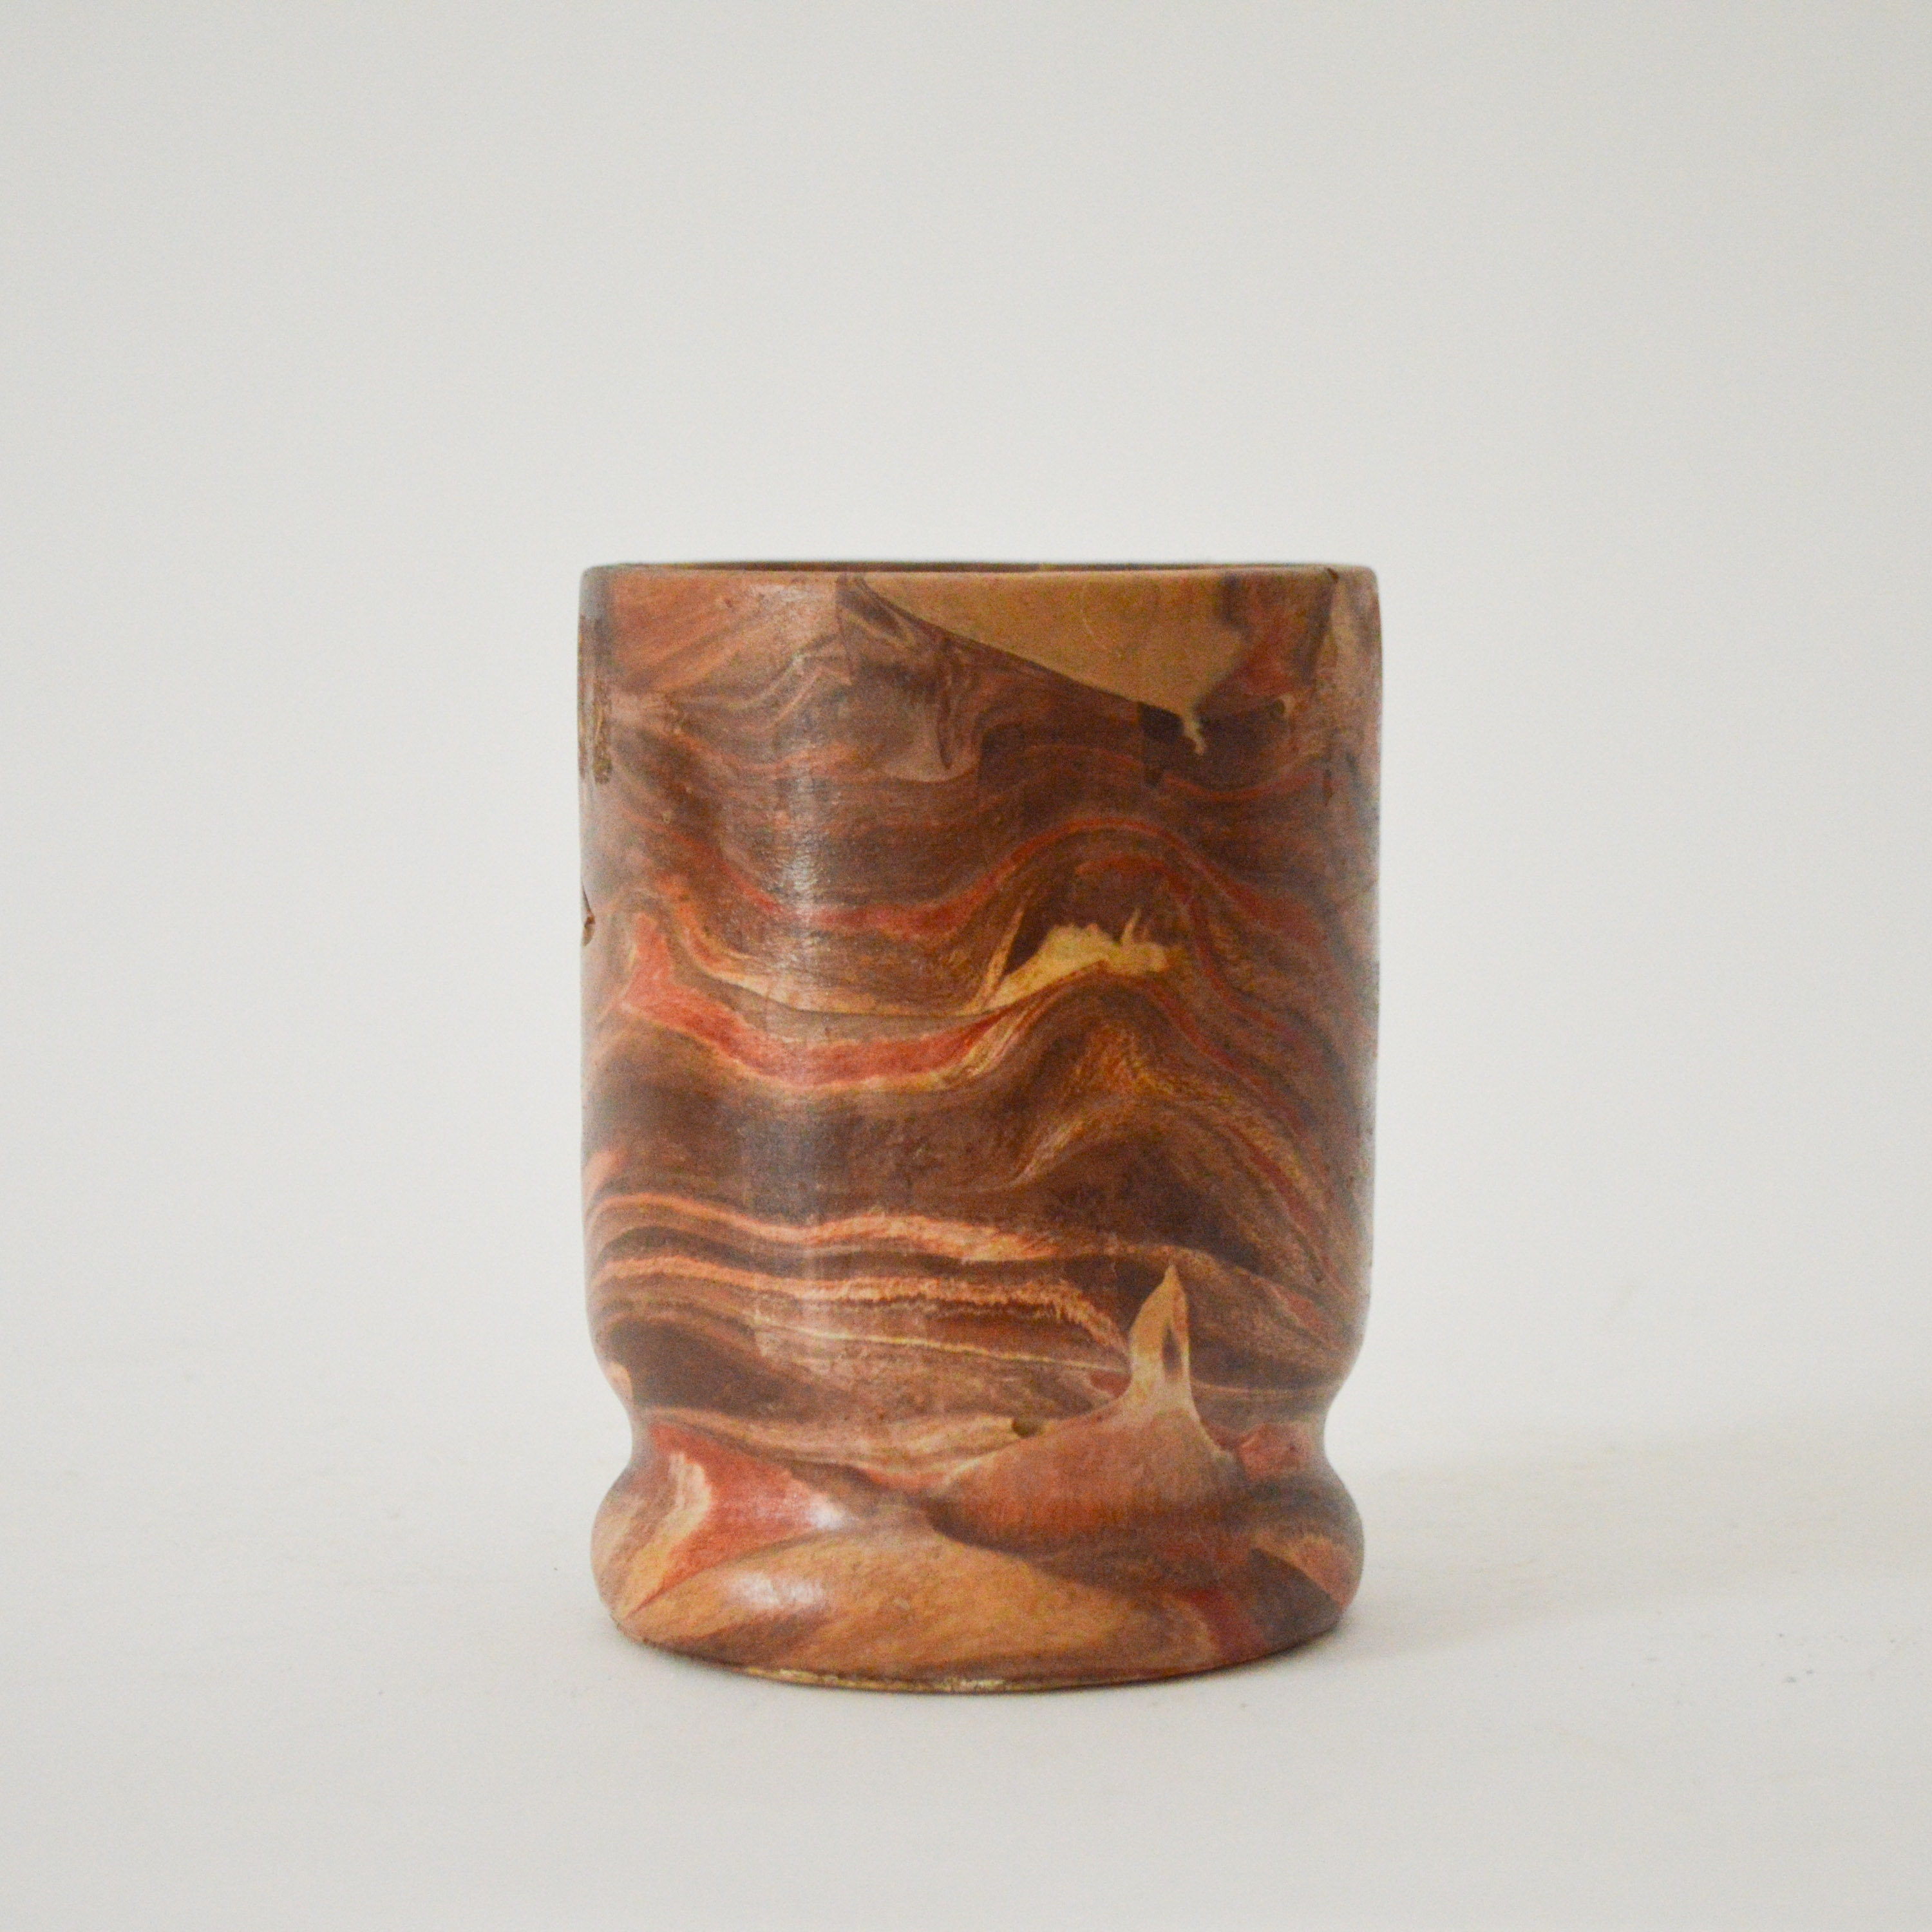 Vintage Native American-Style Art Pottery Cup